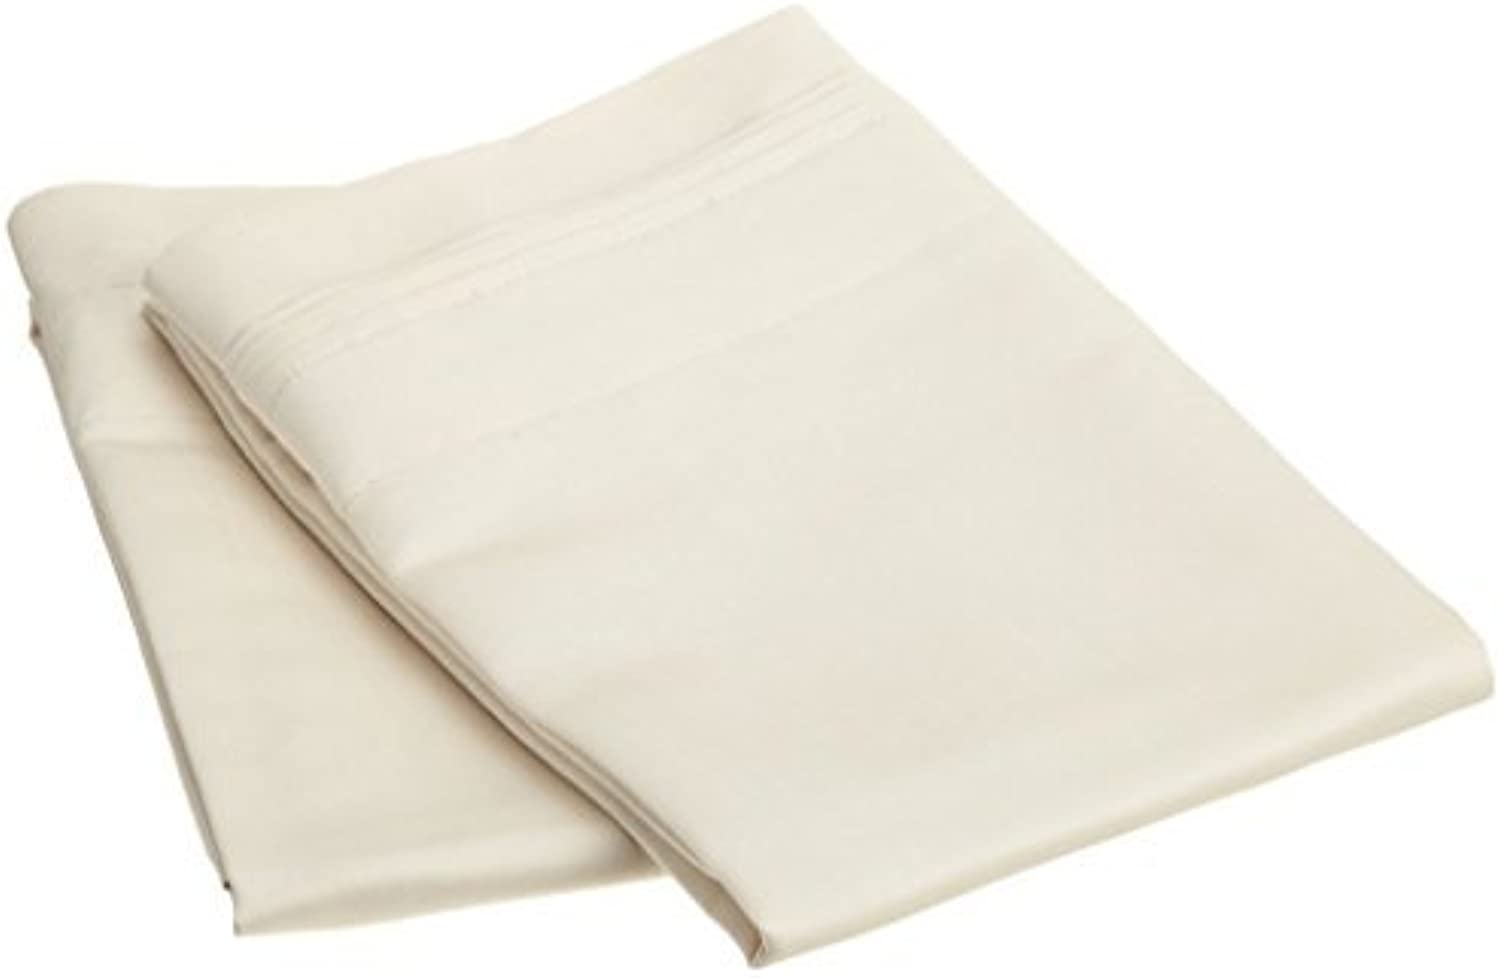 100% Cotton Pillowcases Set of 2, Soft and Cozy, Wrinkle, Fade, Stain Resistant, 20 x 40 , Ivory Solid